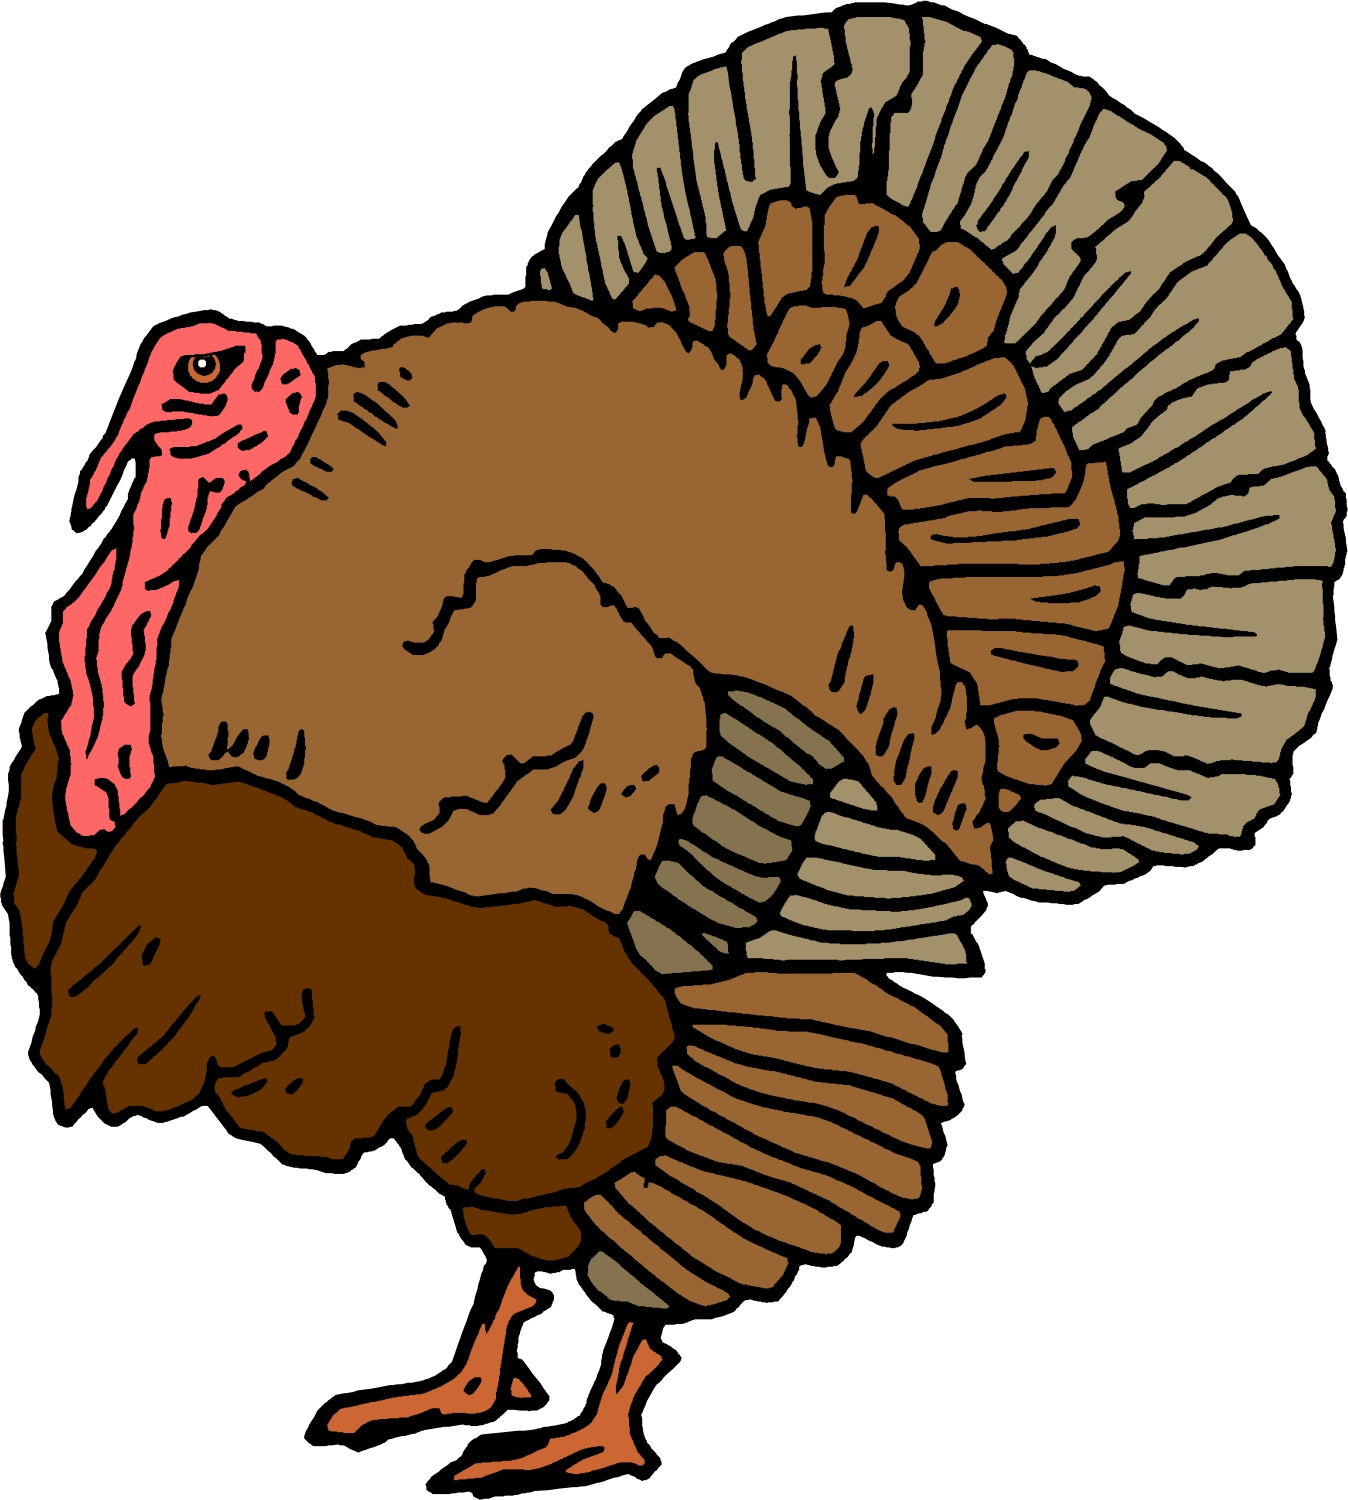 Free Animated Turkey Pictures, Download Free Clip Art, Free Clip Art.